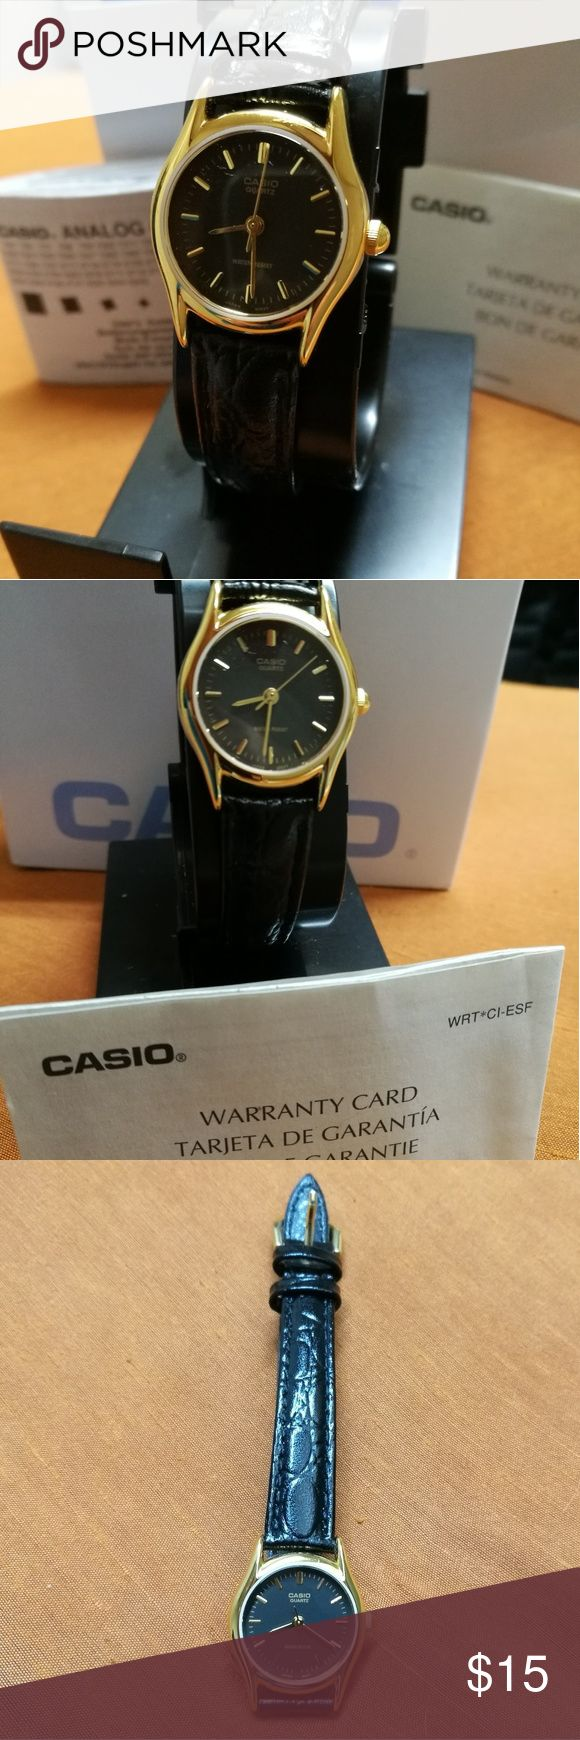 Casio ladies watch with warranty and box I bought this watch, wore it one afternoon, and then fell in love with a Skagen watch here on PM. In the spirit of not having too many things (Pm doesn't make it easy!), I am putting this up for sale. Simple and classic. Casio Accessories Watches